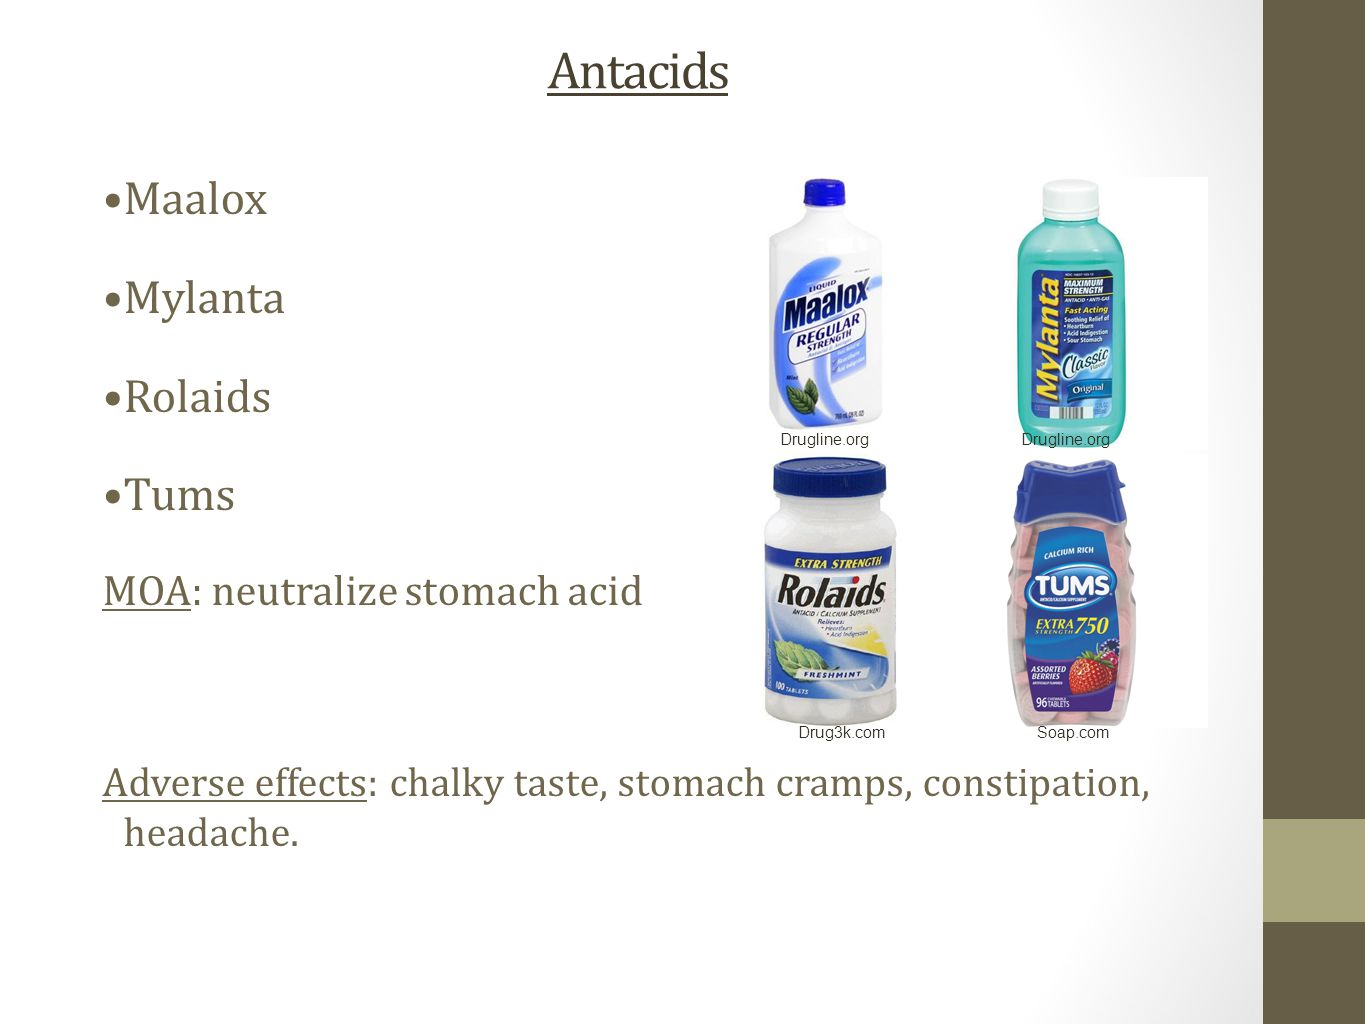 Antacids Maalox Mylanta Rolaids Tums MOA: neutralize stomach acid Adverse effects: chalky taste, stomach cramps, constipation, headache. Soap.comDrug3